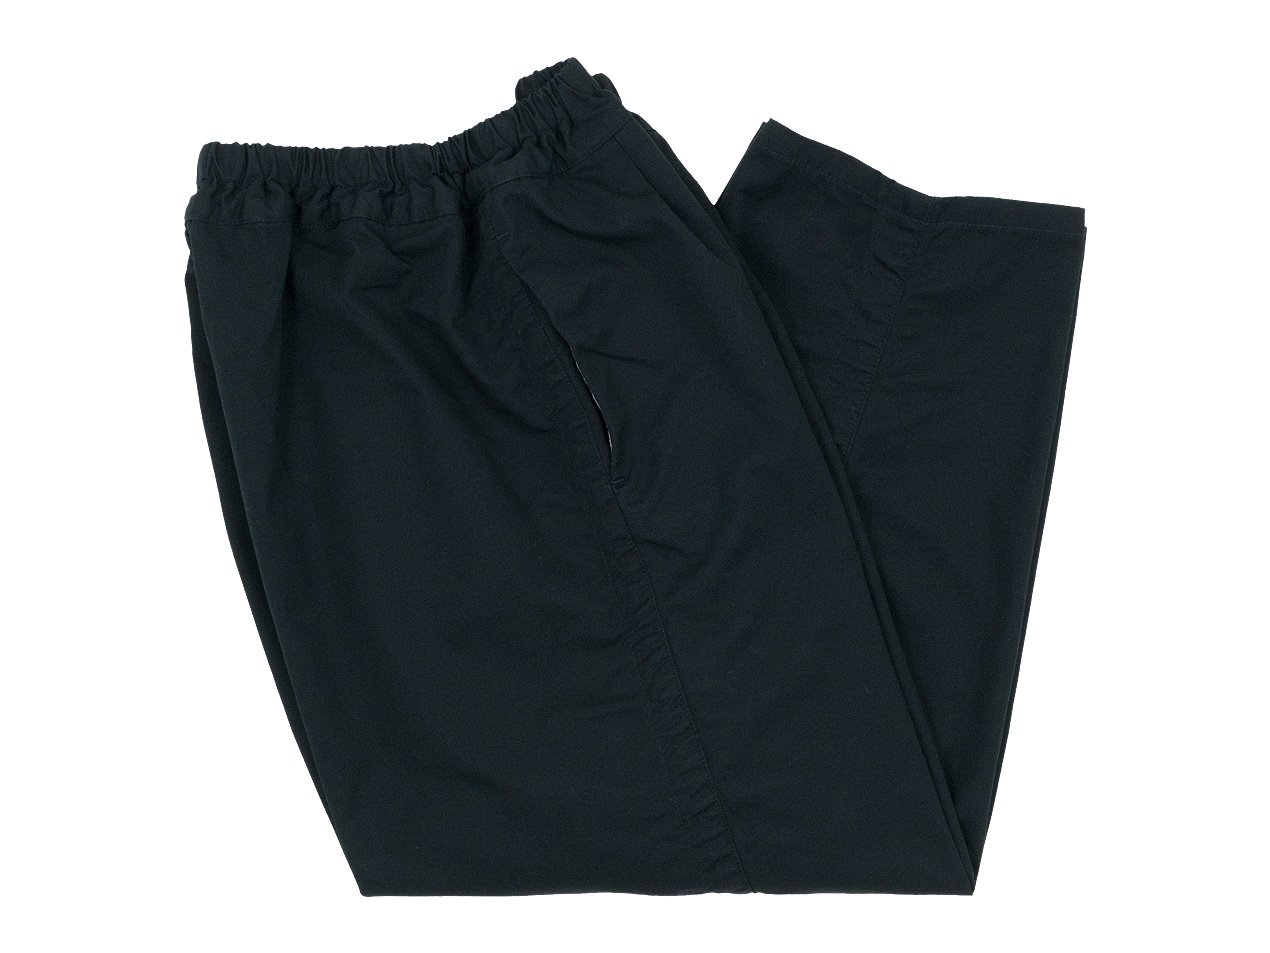 ordinary fits NARROW BALL PANTS BLACK